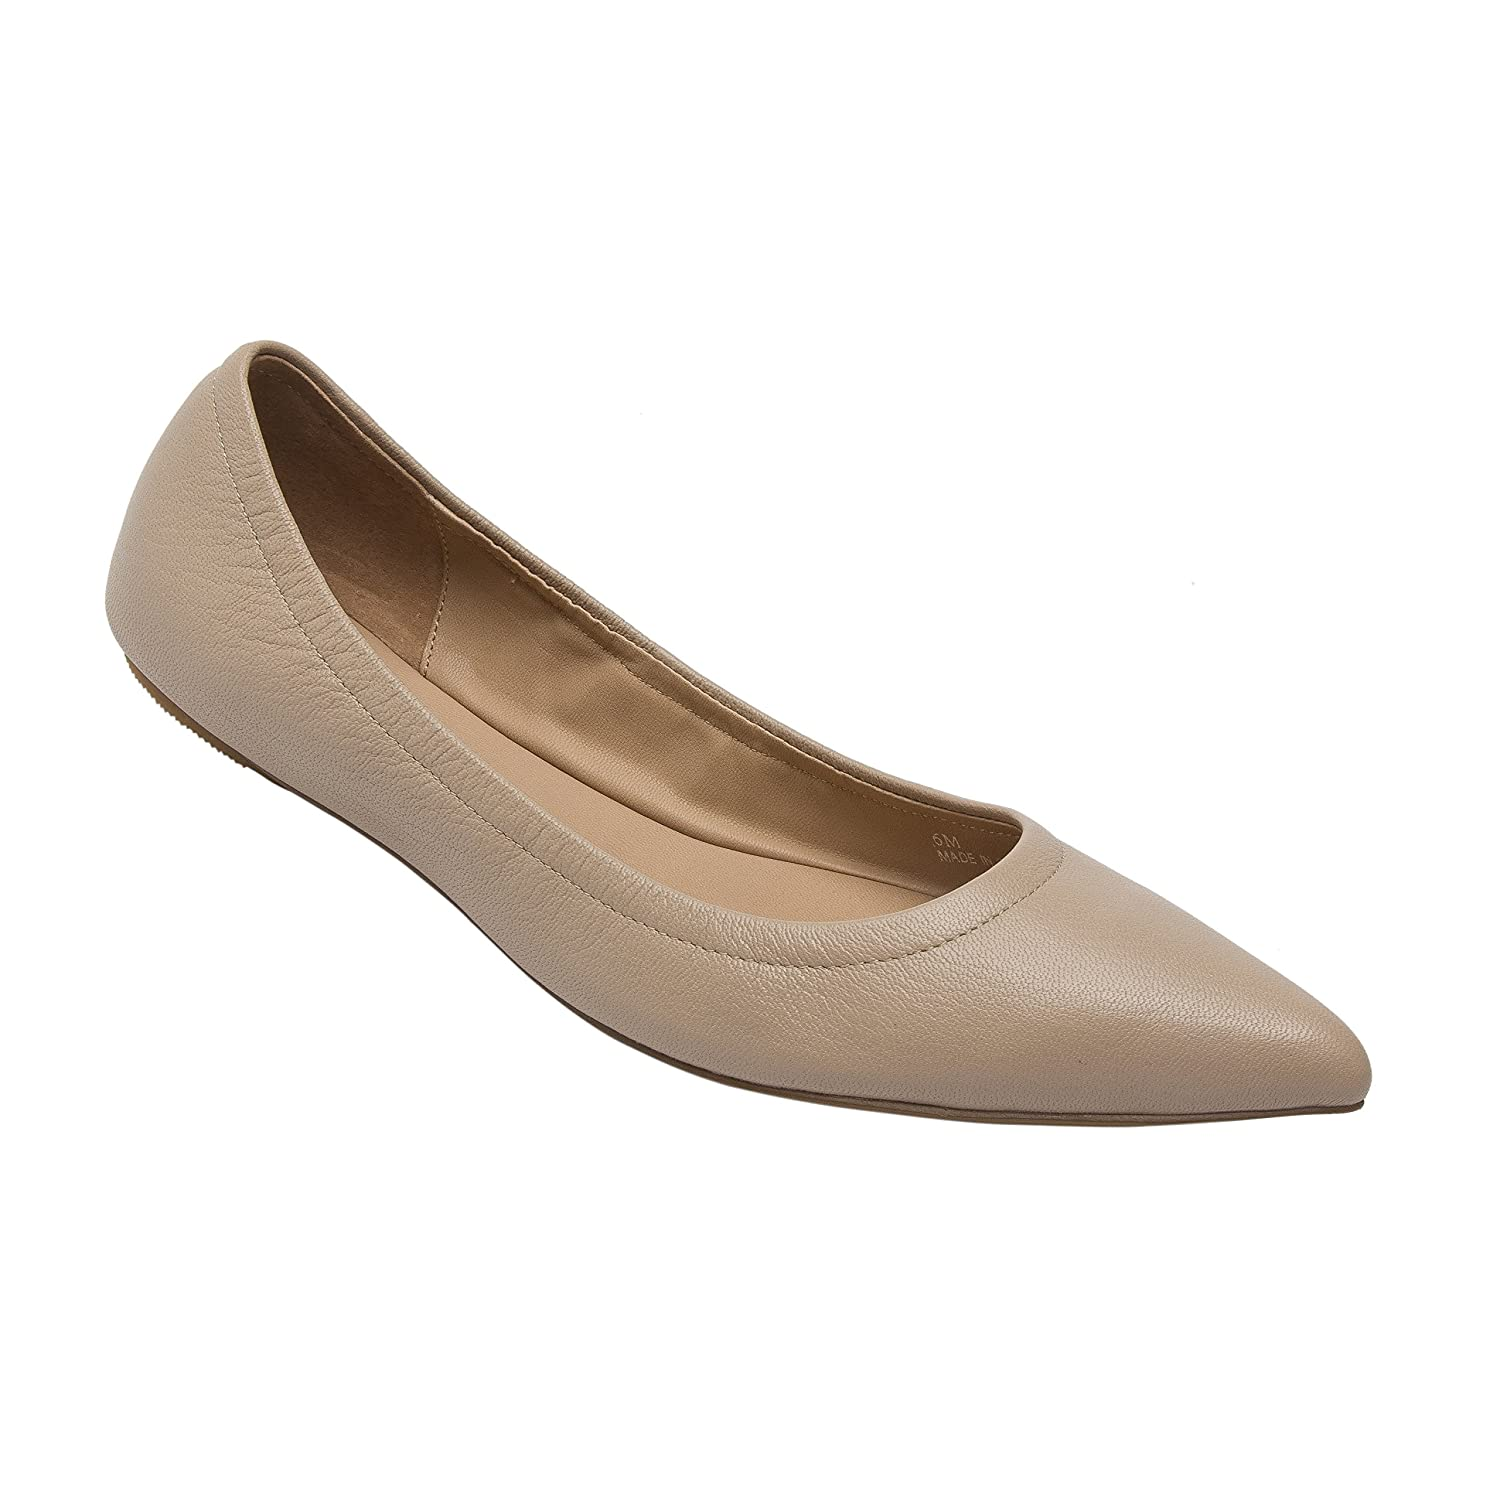 NICO | Women's Pointy Toe Elasticized Leather or Suede Ballet Flat (New Spring) B0778WS725 8.5 M US|Blush Light Pebbled Leather